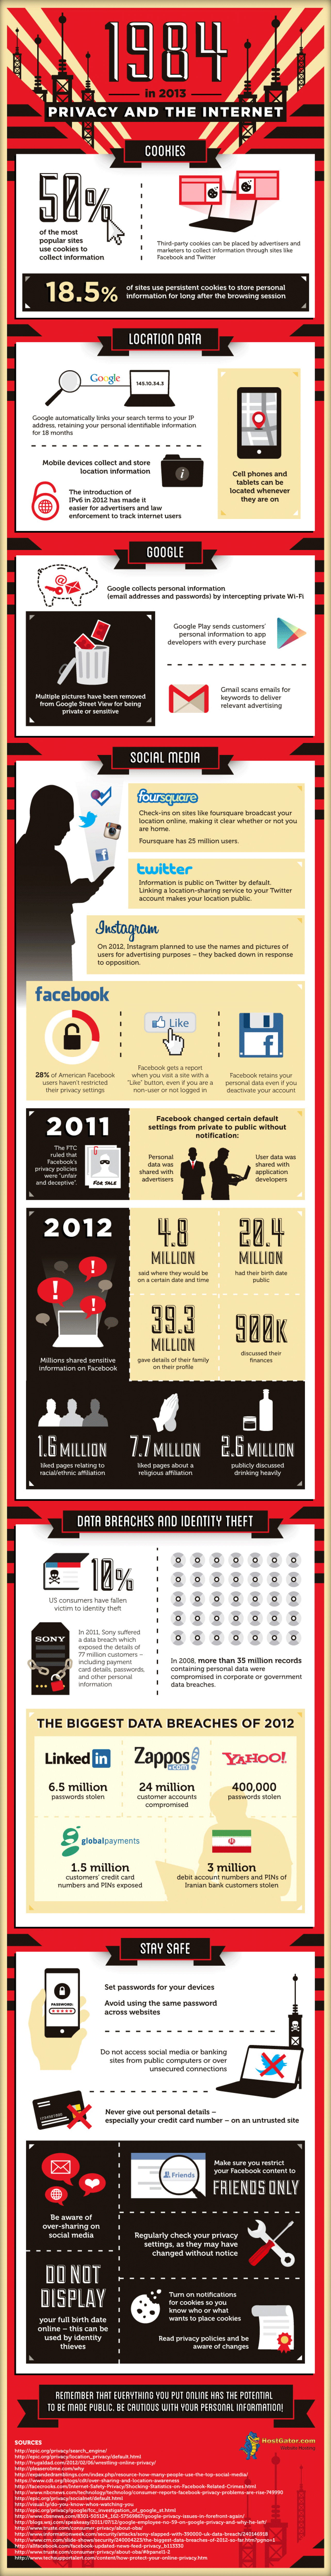 1984 in 2013: Privacy and The Internet Infographic